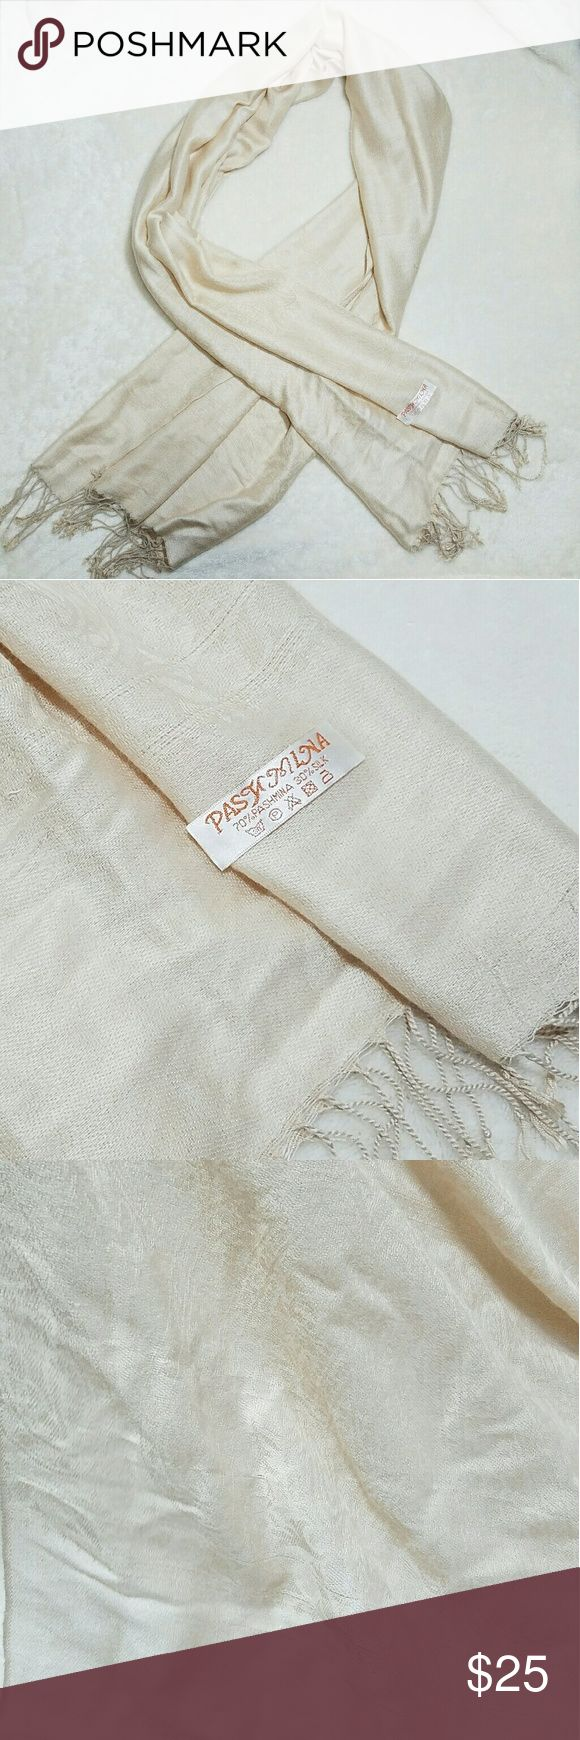 Pashmina Cream Luxurious Long Pashmina Scarf -Good used condition- a few pulls in the fabric (see last two photos)  -Subtle paisley design in the woven construction -Thread tassles on each end Please use measurements for size reference, all measurements are taken laying flat: -Length 6.5' -Width 2.25' -70% Pashmina  -30% Silk -Cream beige (colors' appearance may vary on screen)  Questions? Just ask! Bundle to save!  Offers welcome  Happy Poshing! Pashmina Accessories Scarves & Wraps